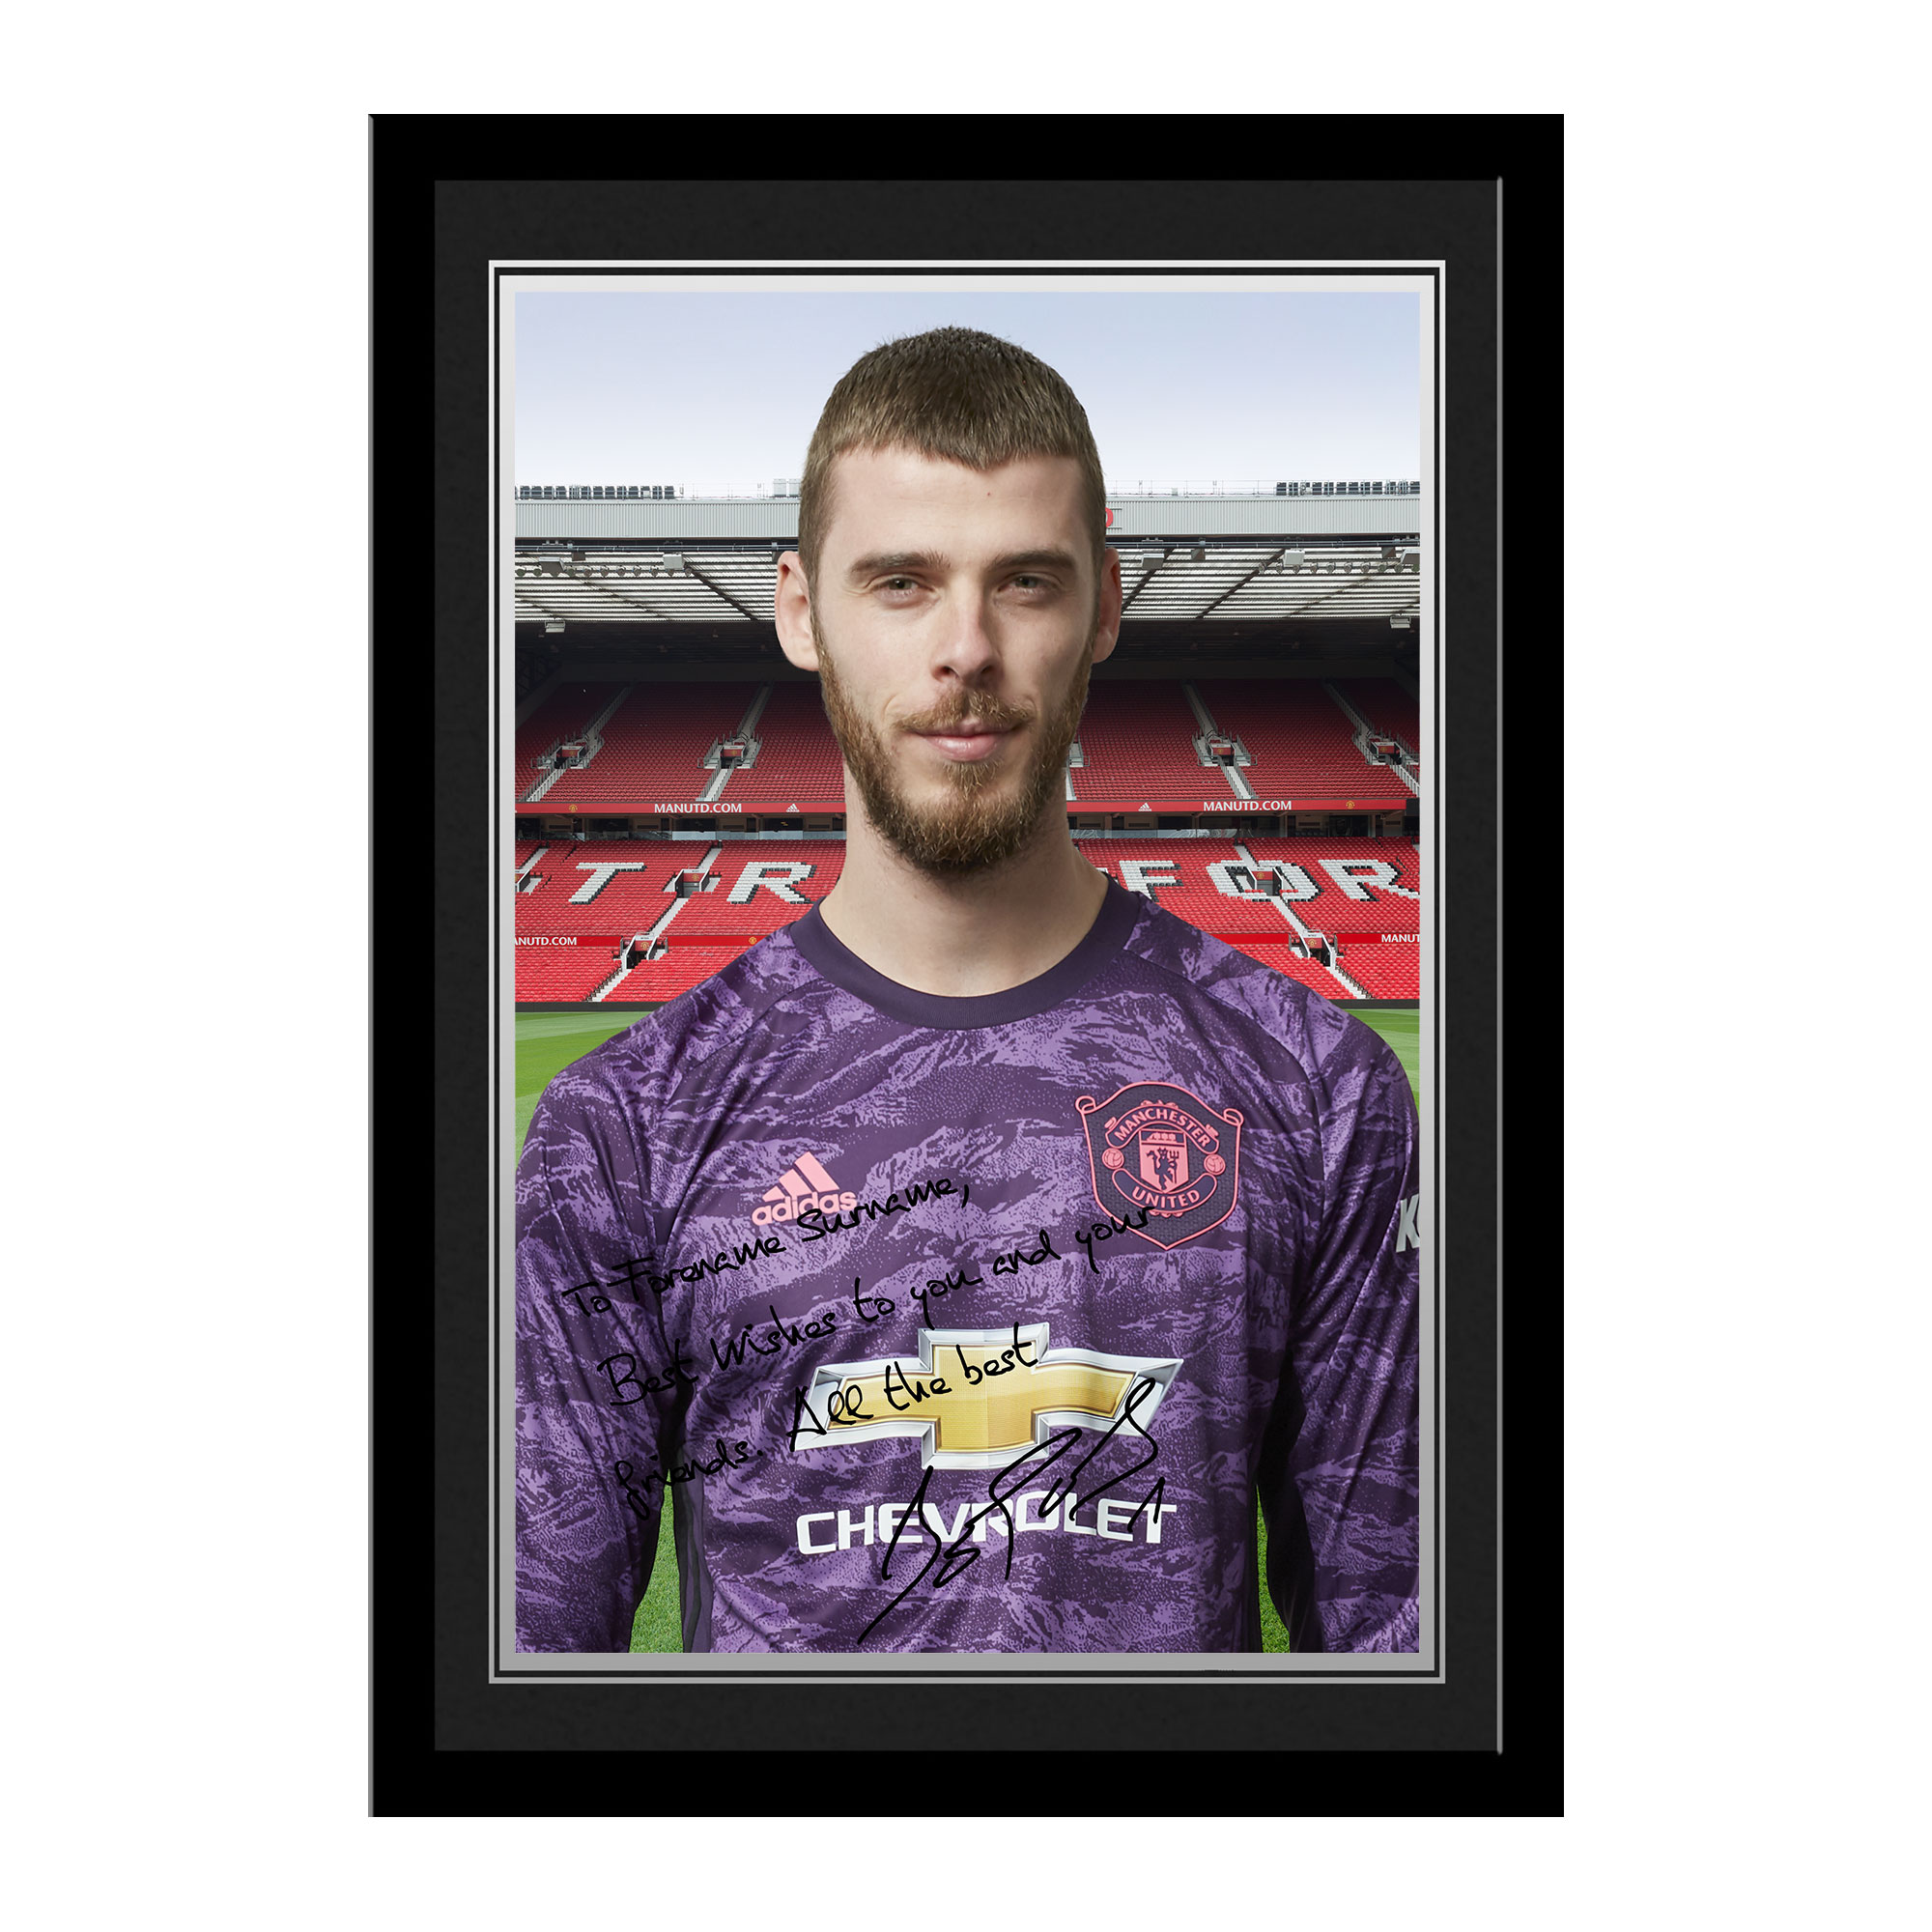 Manchester United Personalised Signature Photo Framed - David De Gea